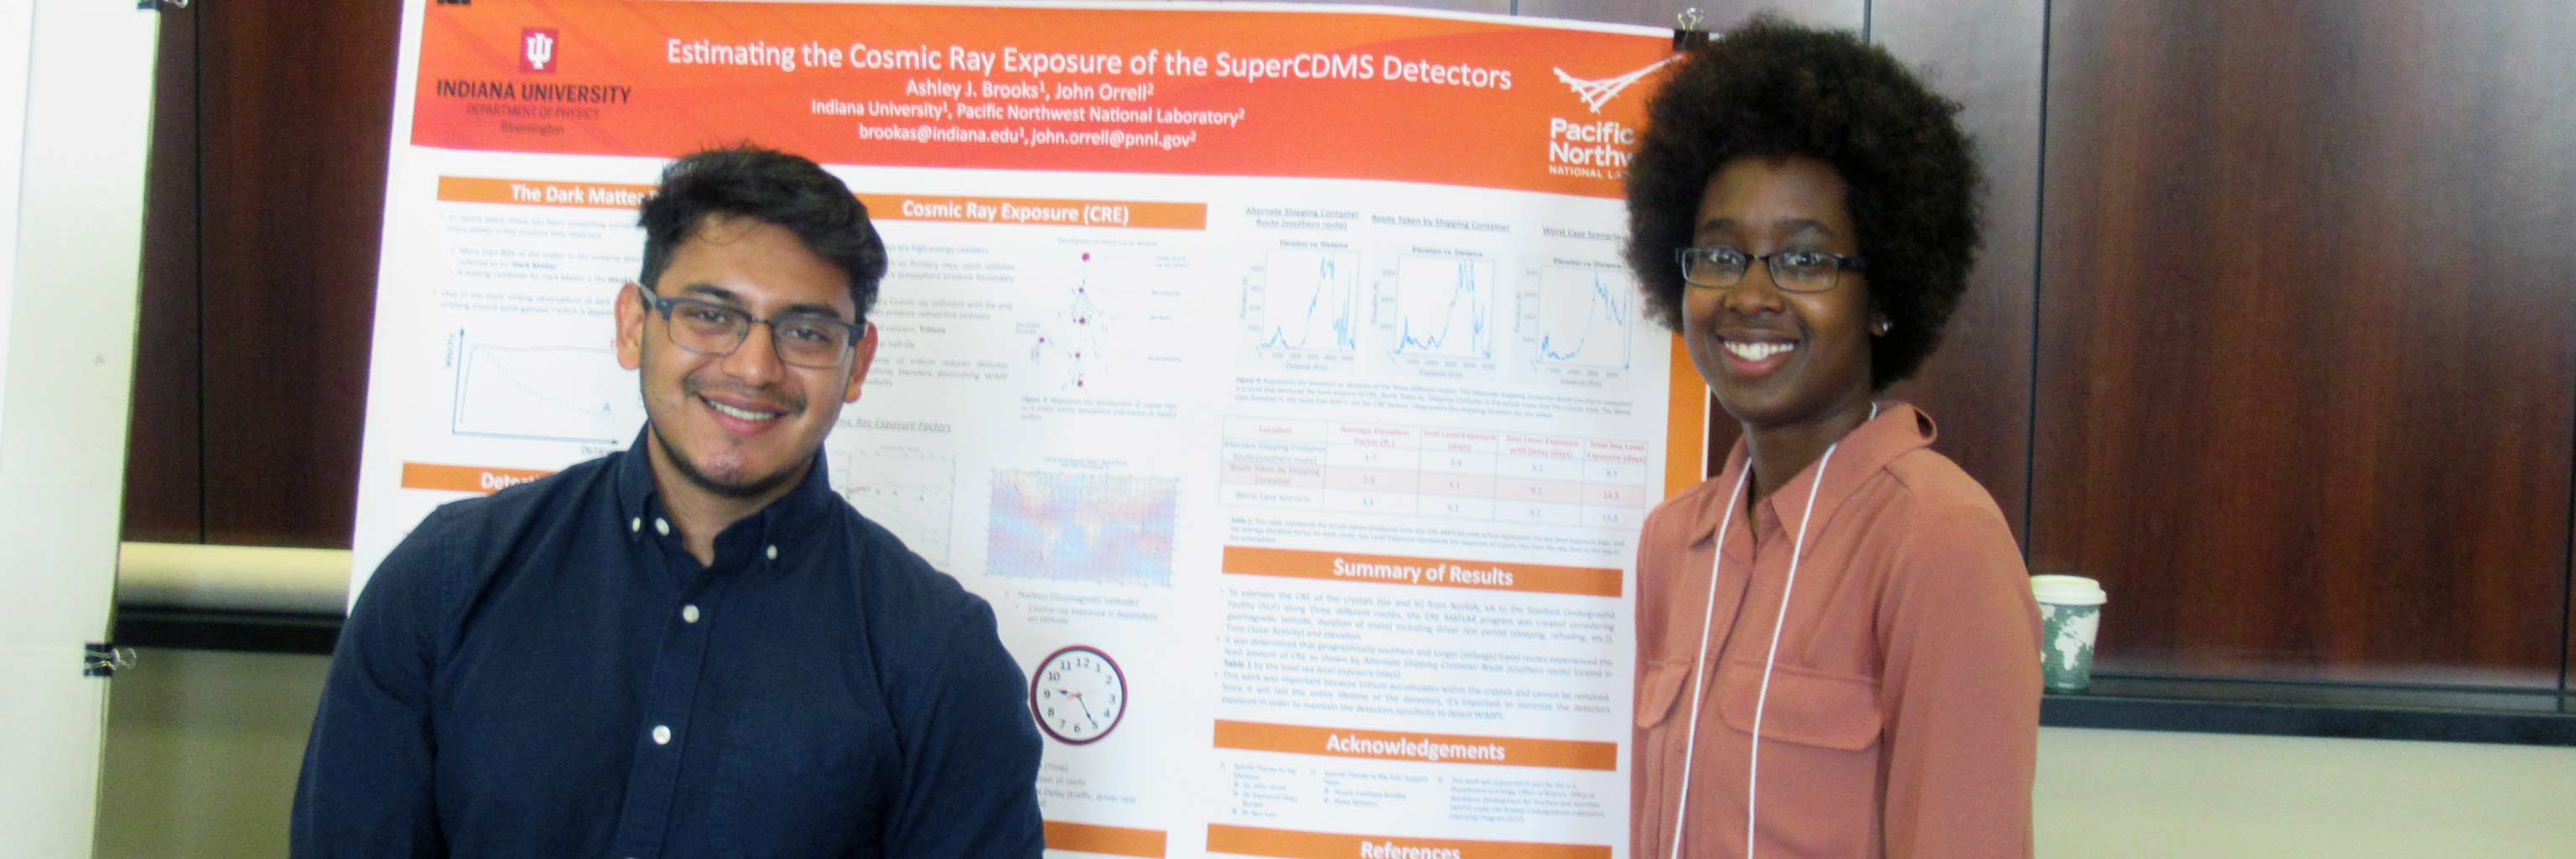 Two Bridge program students in front of a presentation board